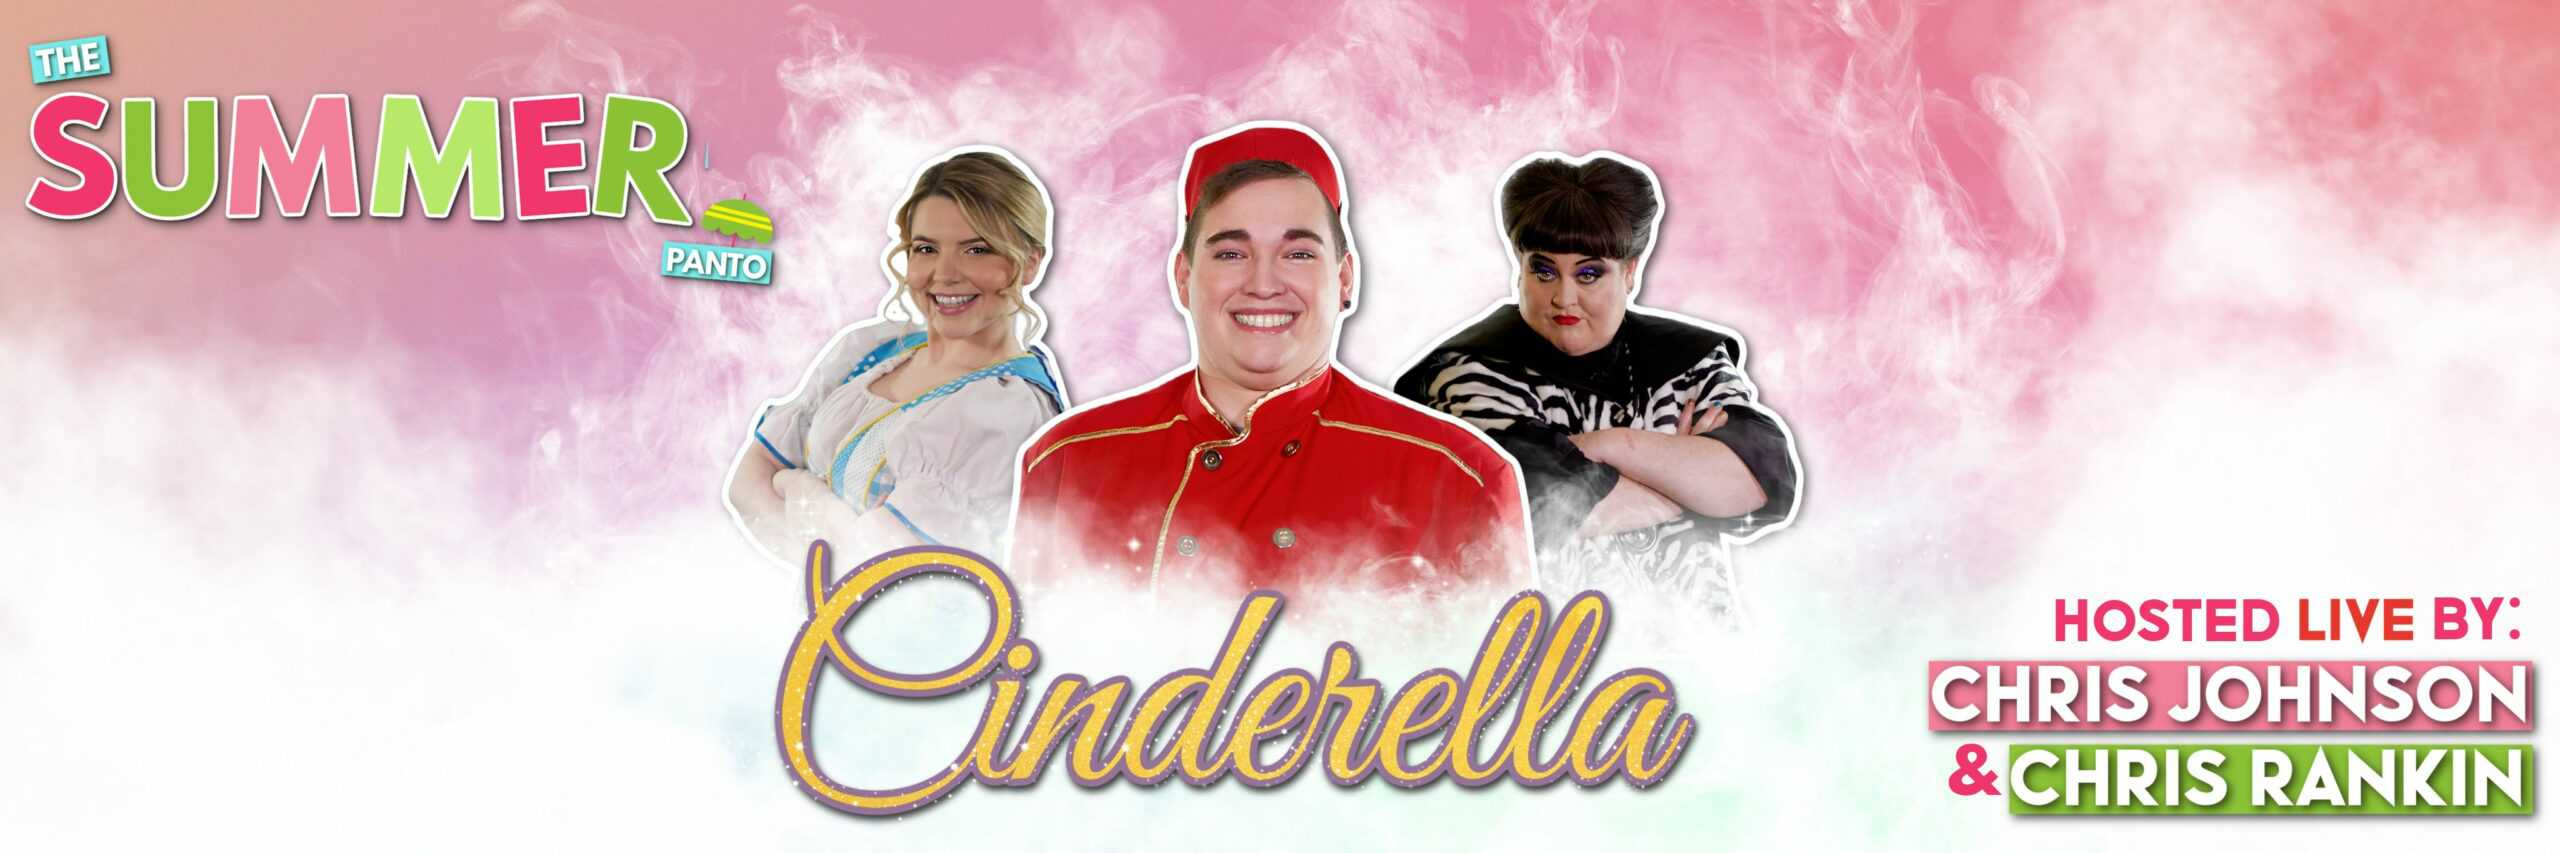 Bippity Boppity Behind You! Discover the Magic of British Pantomime in Your Own Homes with Cinderella Live